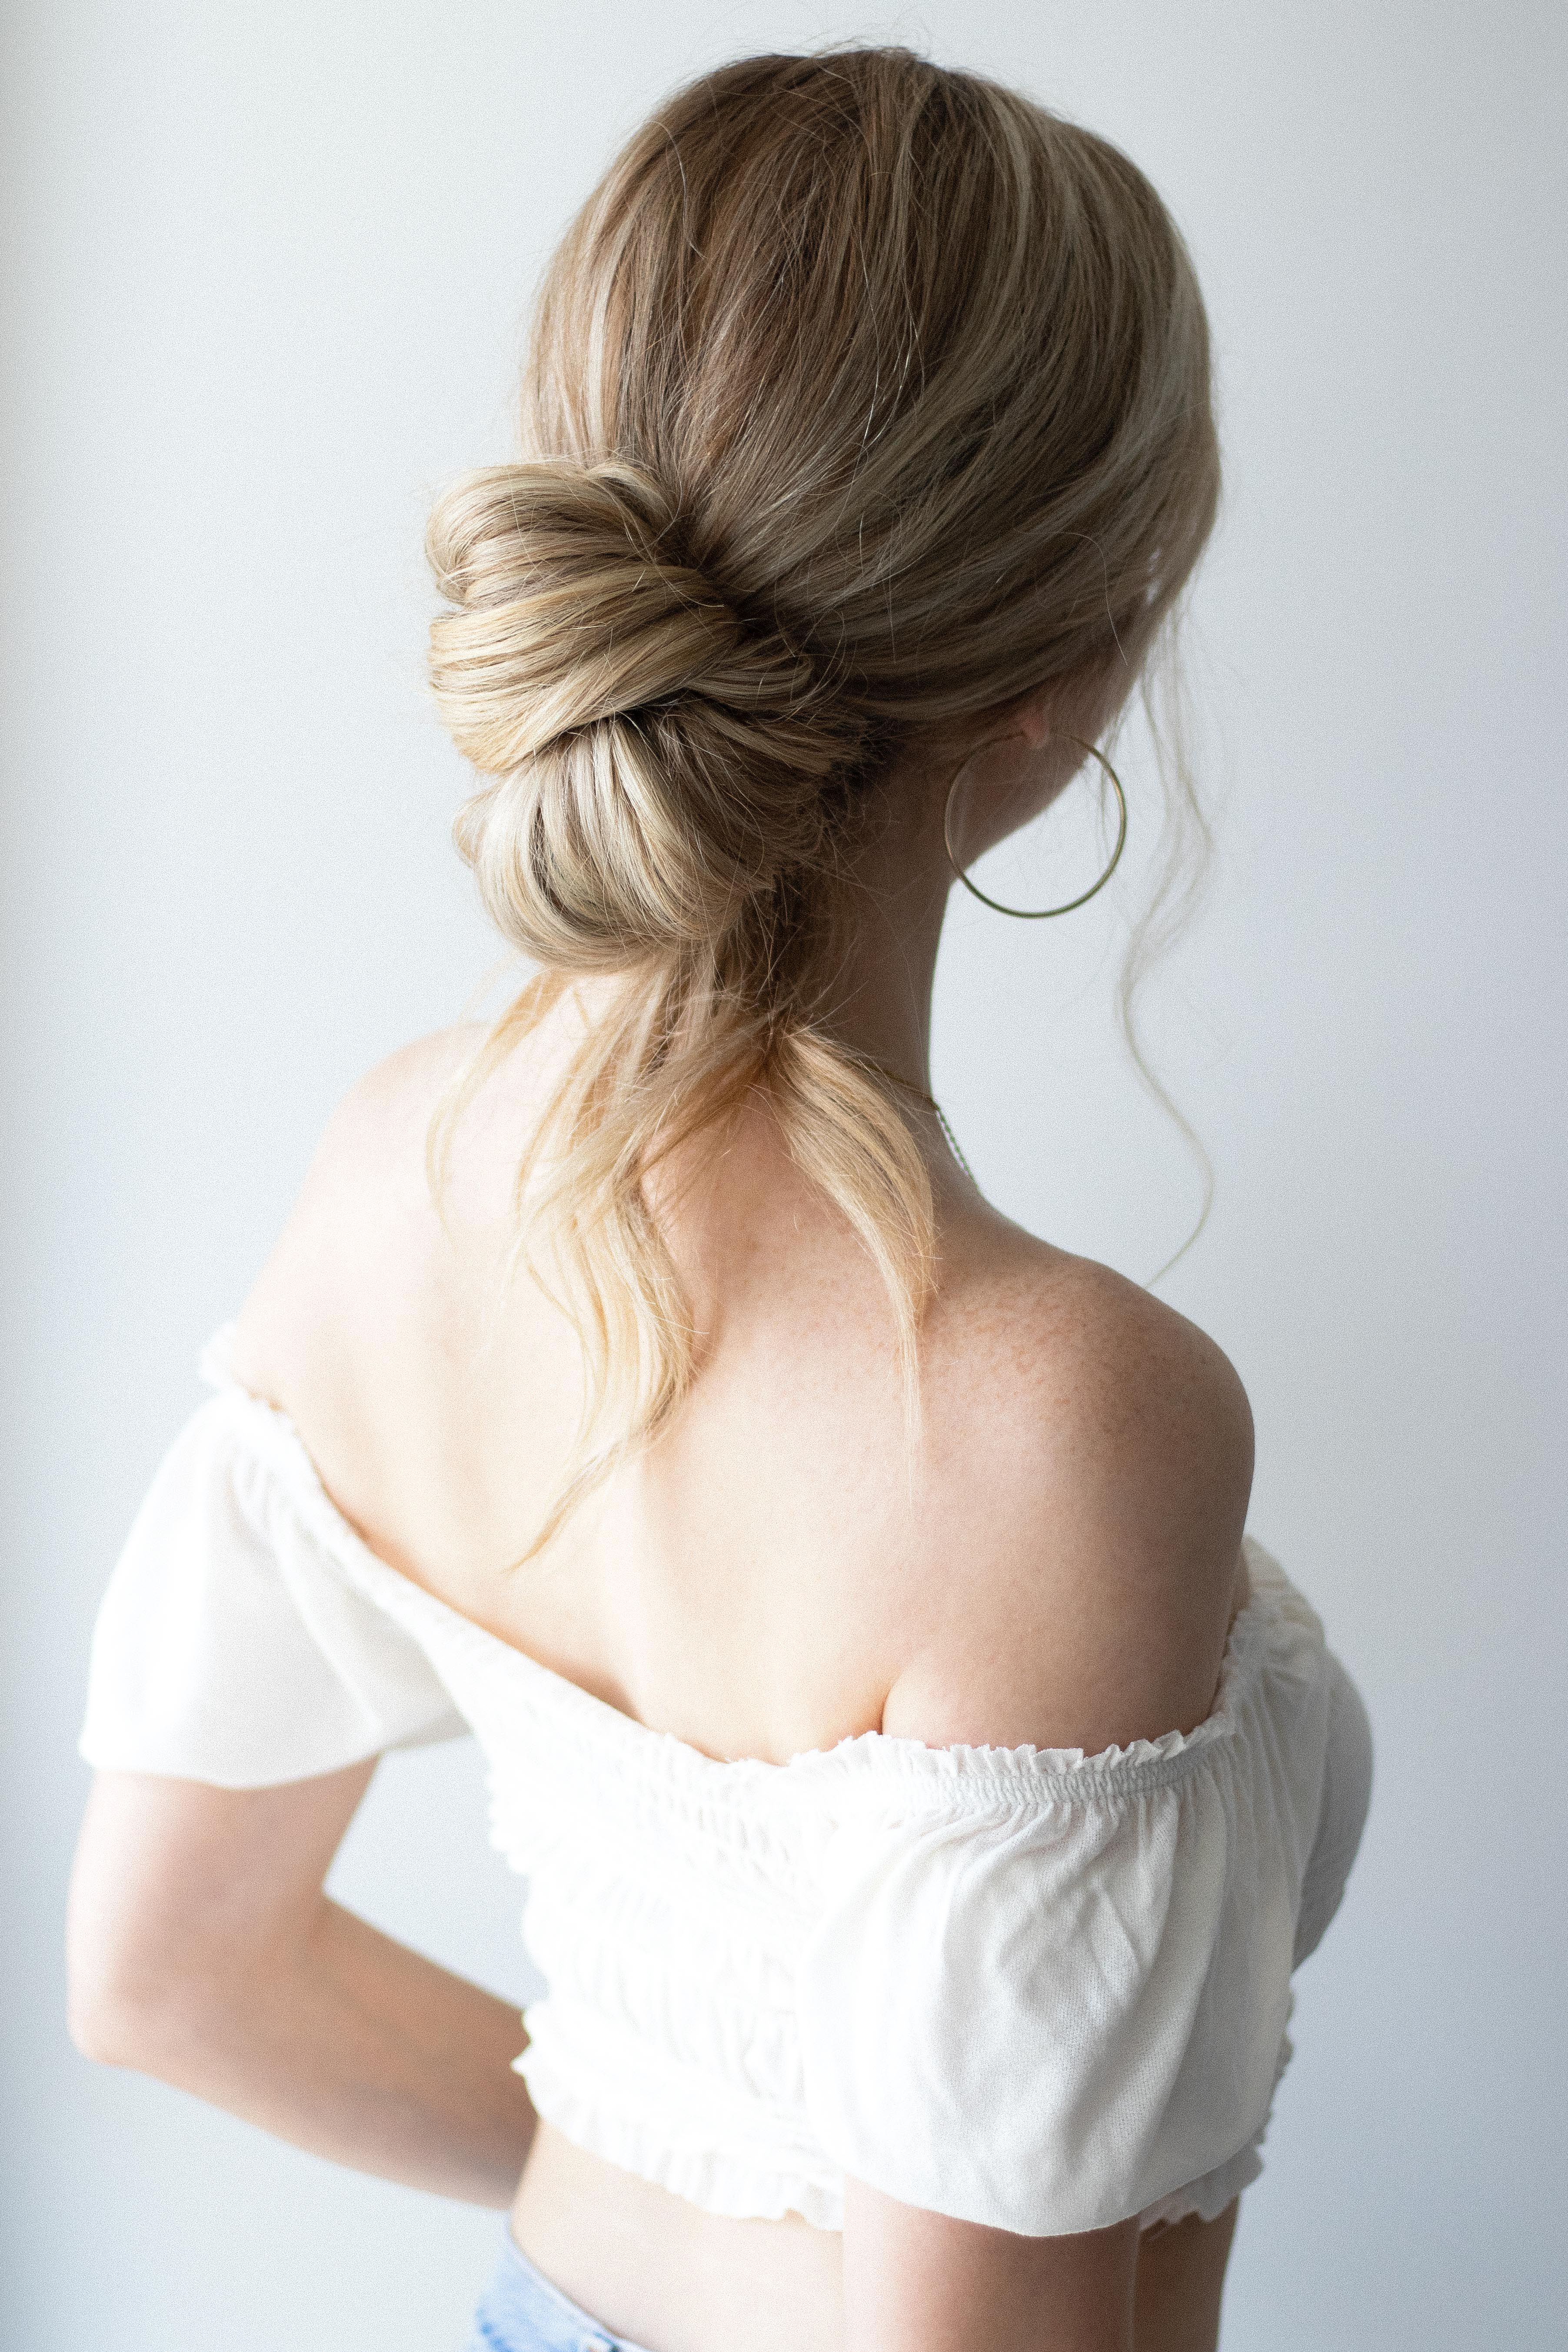 HOW TO: EASY EVERYDAY UPDO WITH VOIR HAIRCARE #updotutorial